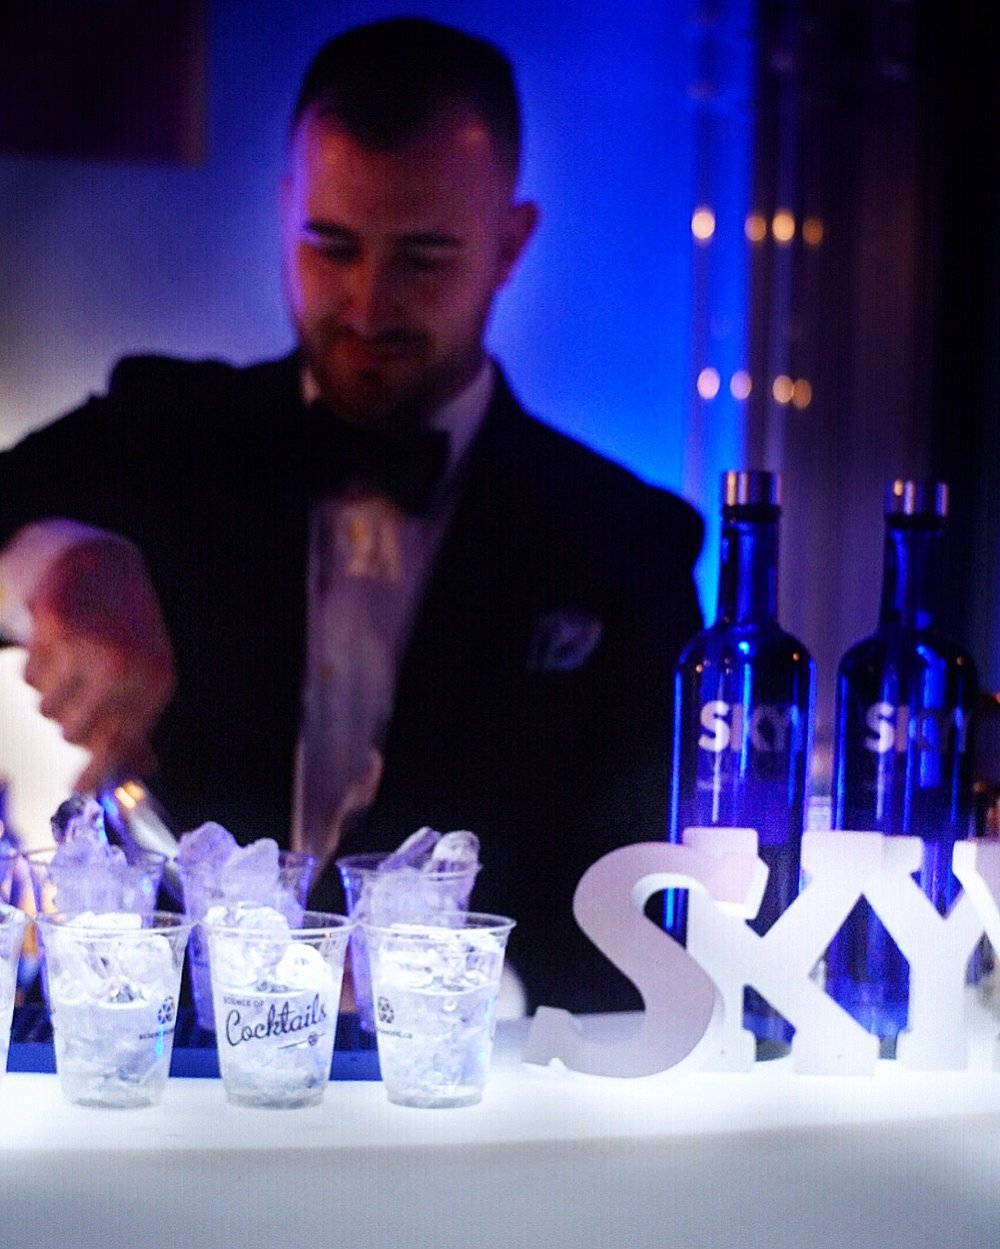 Clear Collins: Skyy vodka, citric acid, simple syrup, dry ice.